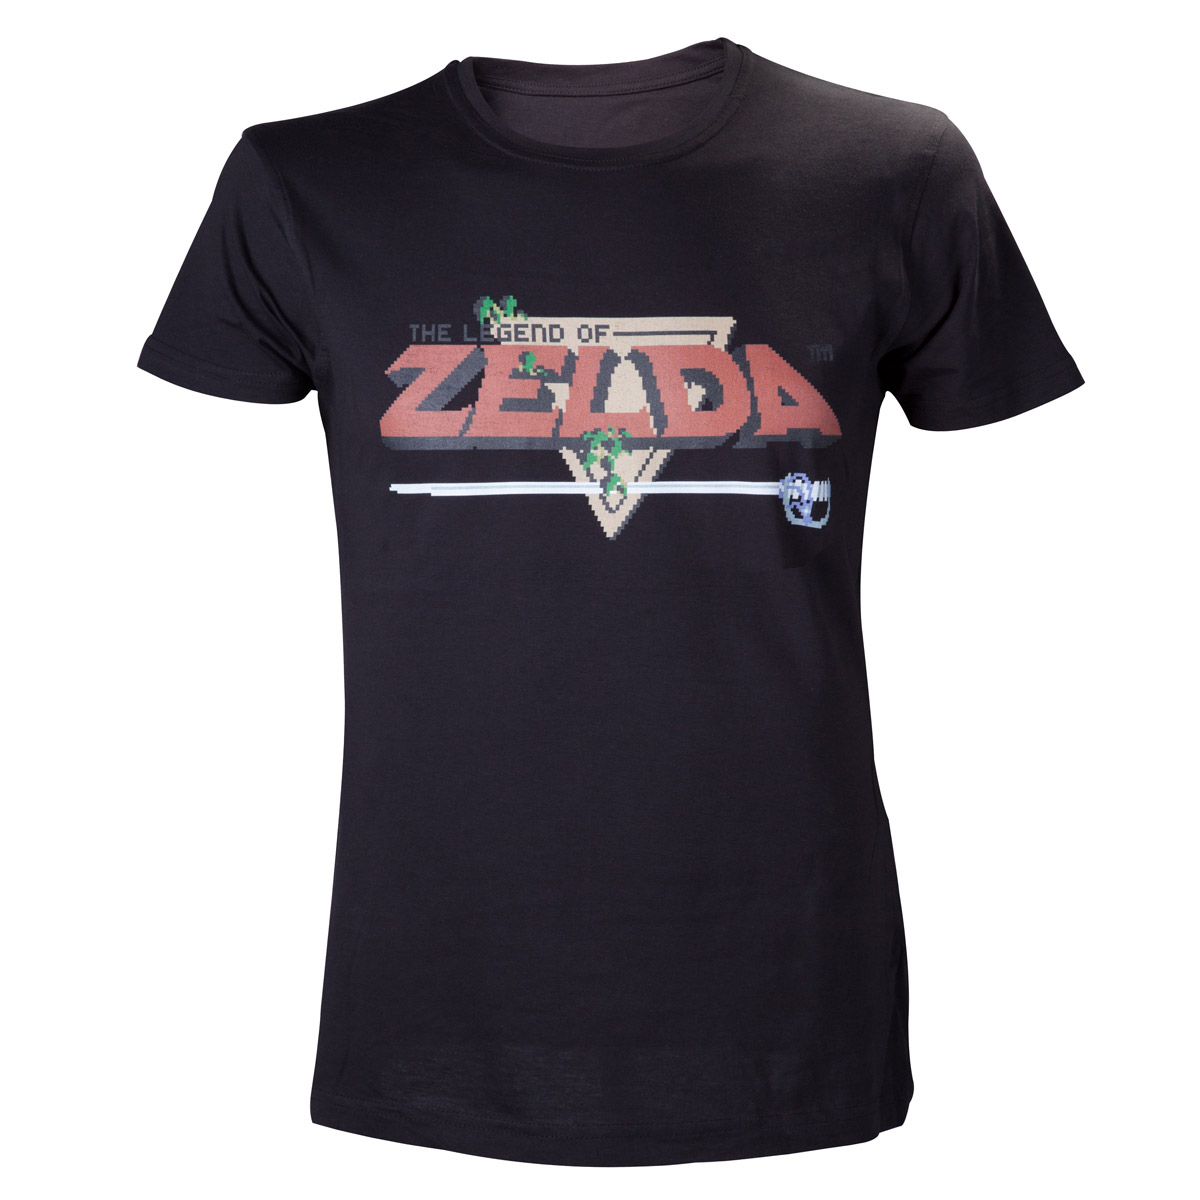 The Legend of Zelda T-Shirt Sword Logo Size L